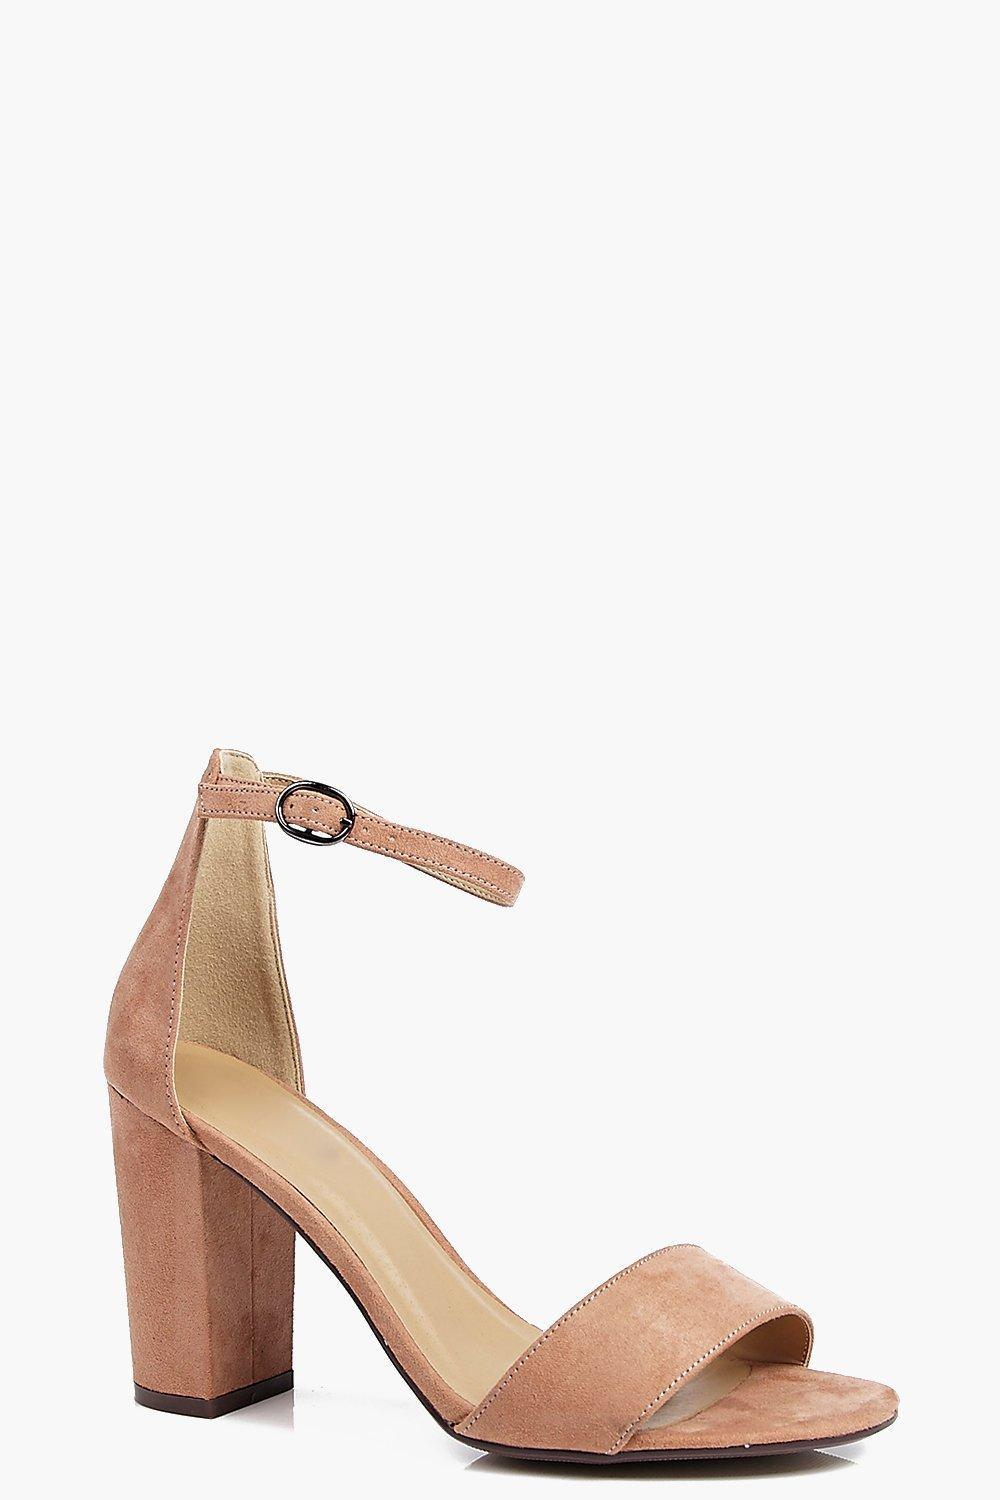 ba8bf9e6f208 Boohoo. Women s Two Part Block Heels